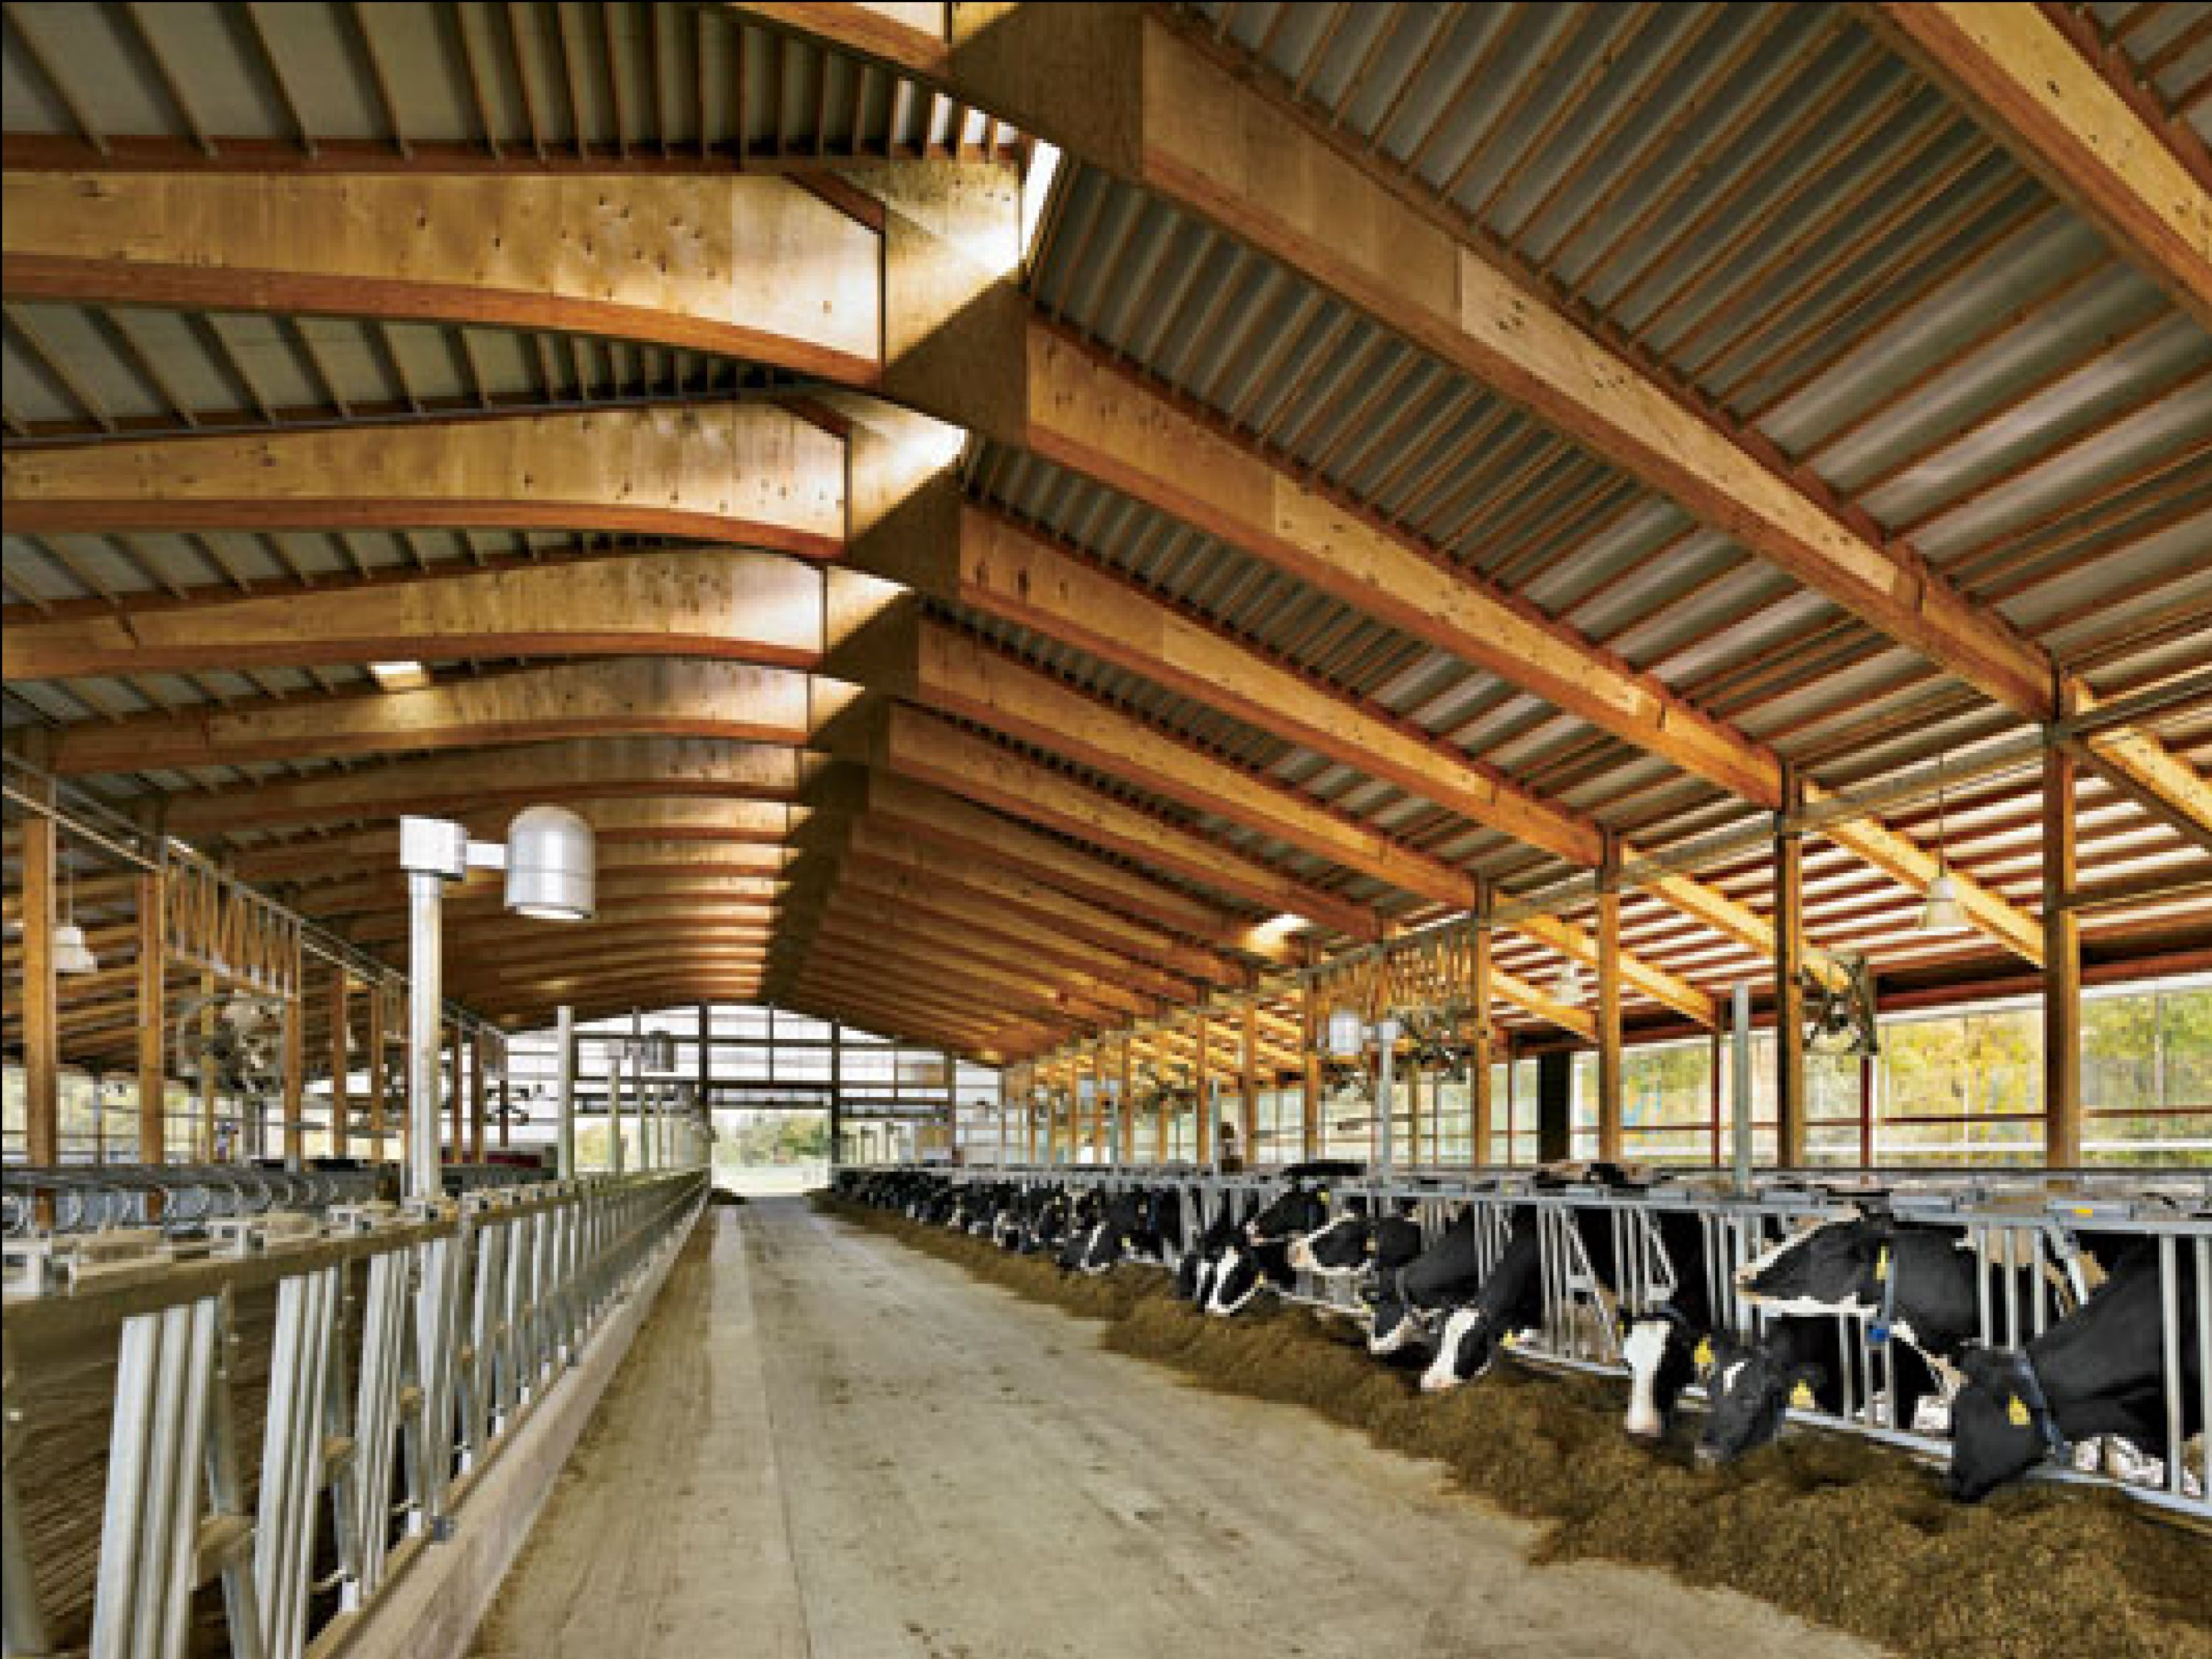 Teaching dairy barn designed by erdy mchenry architects at cornell university ithaca new york